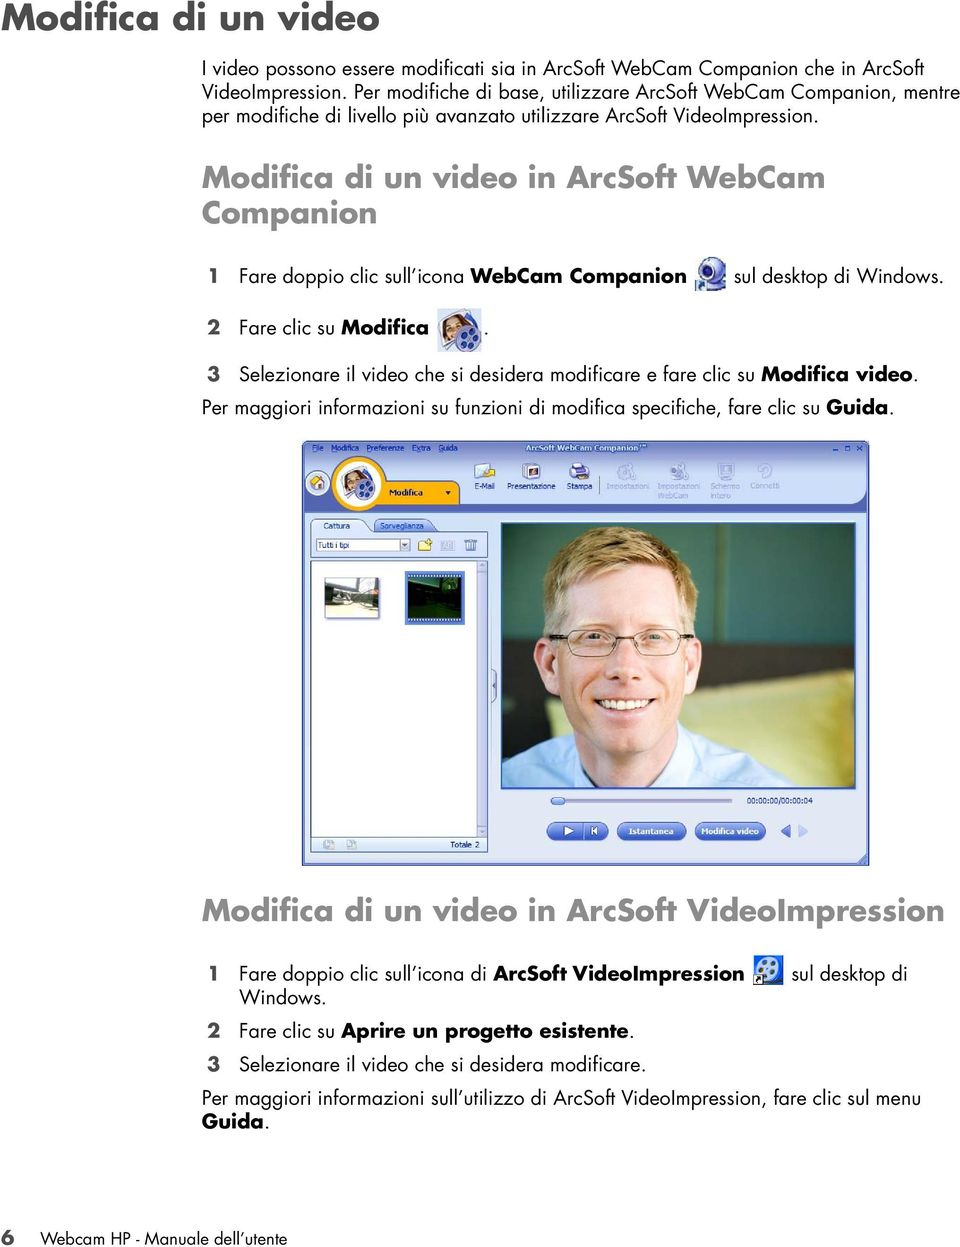 Modifica di un video in ArcSoft WebCam Companion 1 Fare doppio clic sull icona WebCam Companion sul desktop di Windows. 2 Fare clic su Modifica.